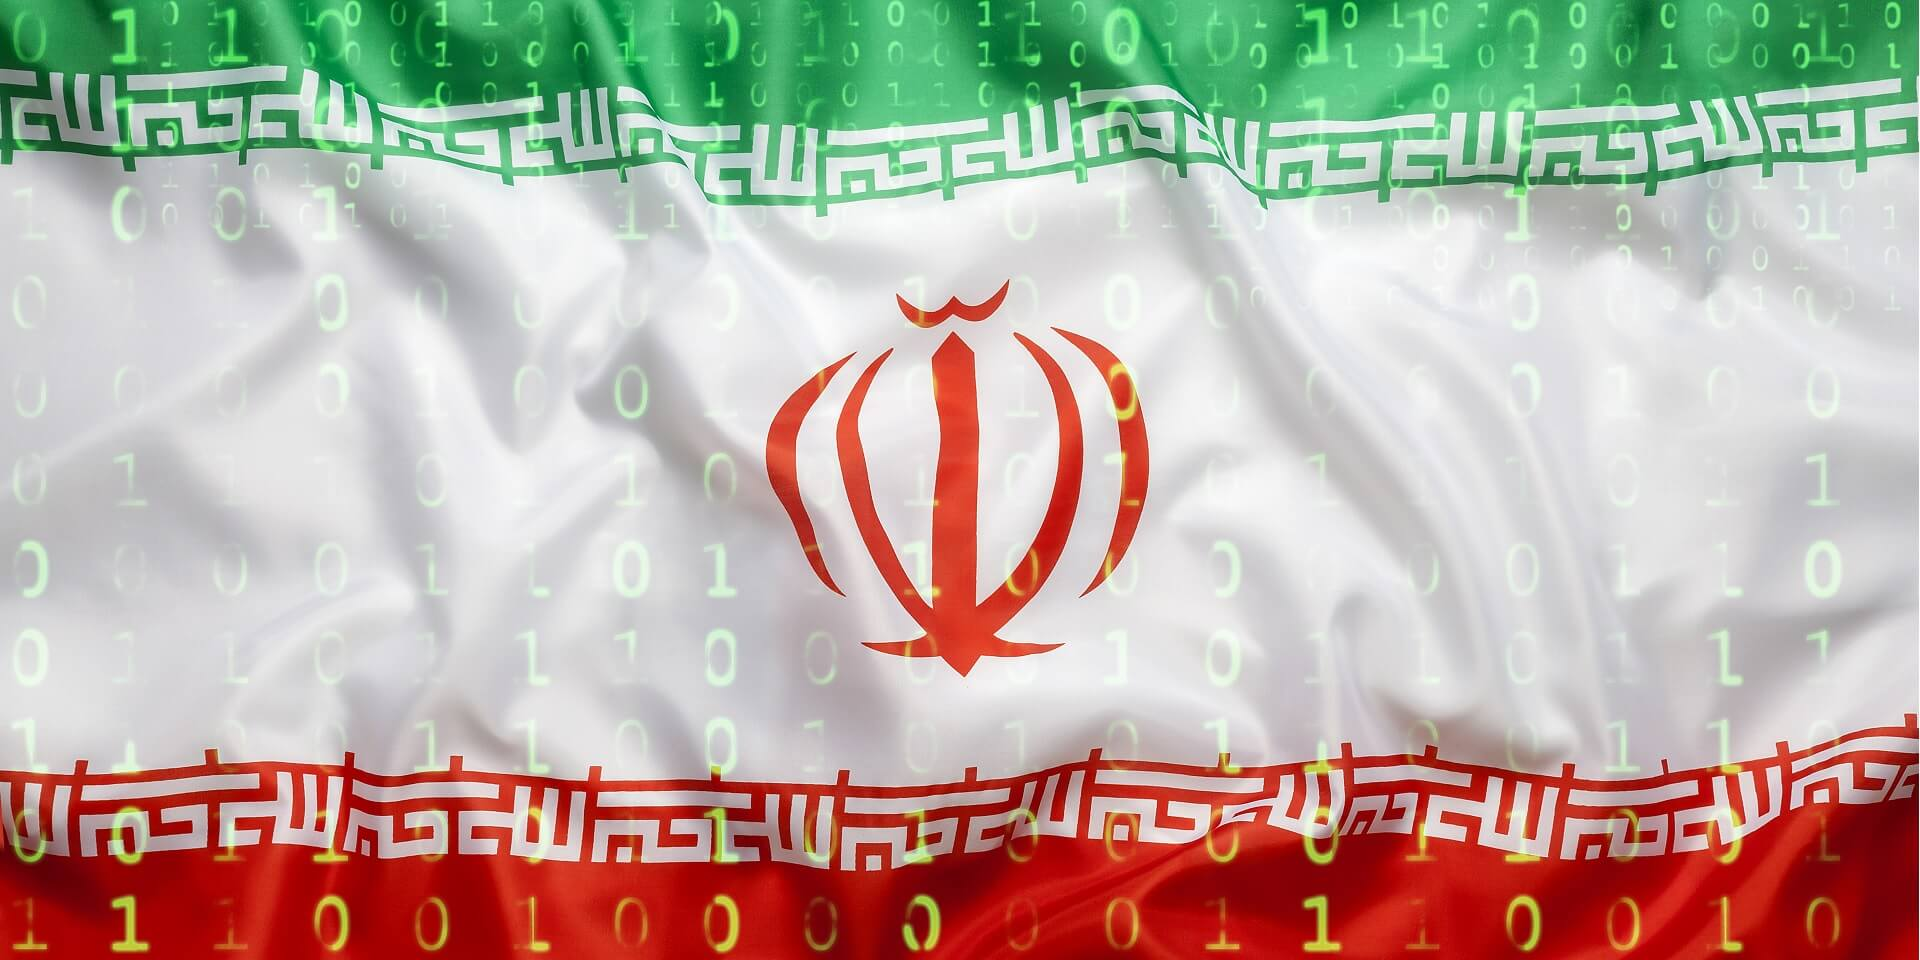 Iranian Hackers Exploited VPNs to Access Company Systems | Tech.co